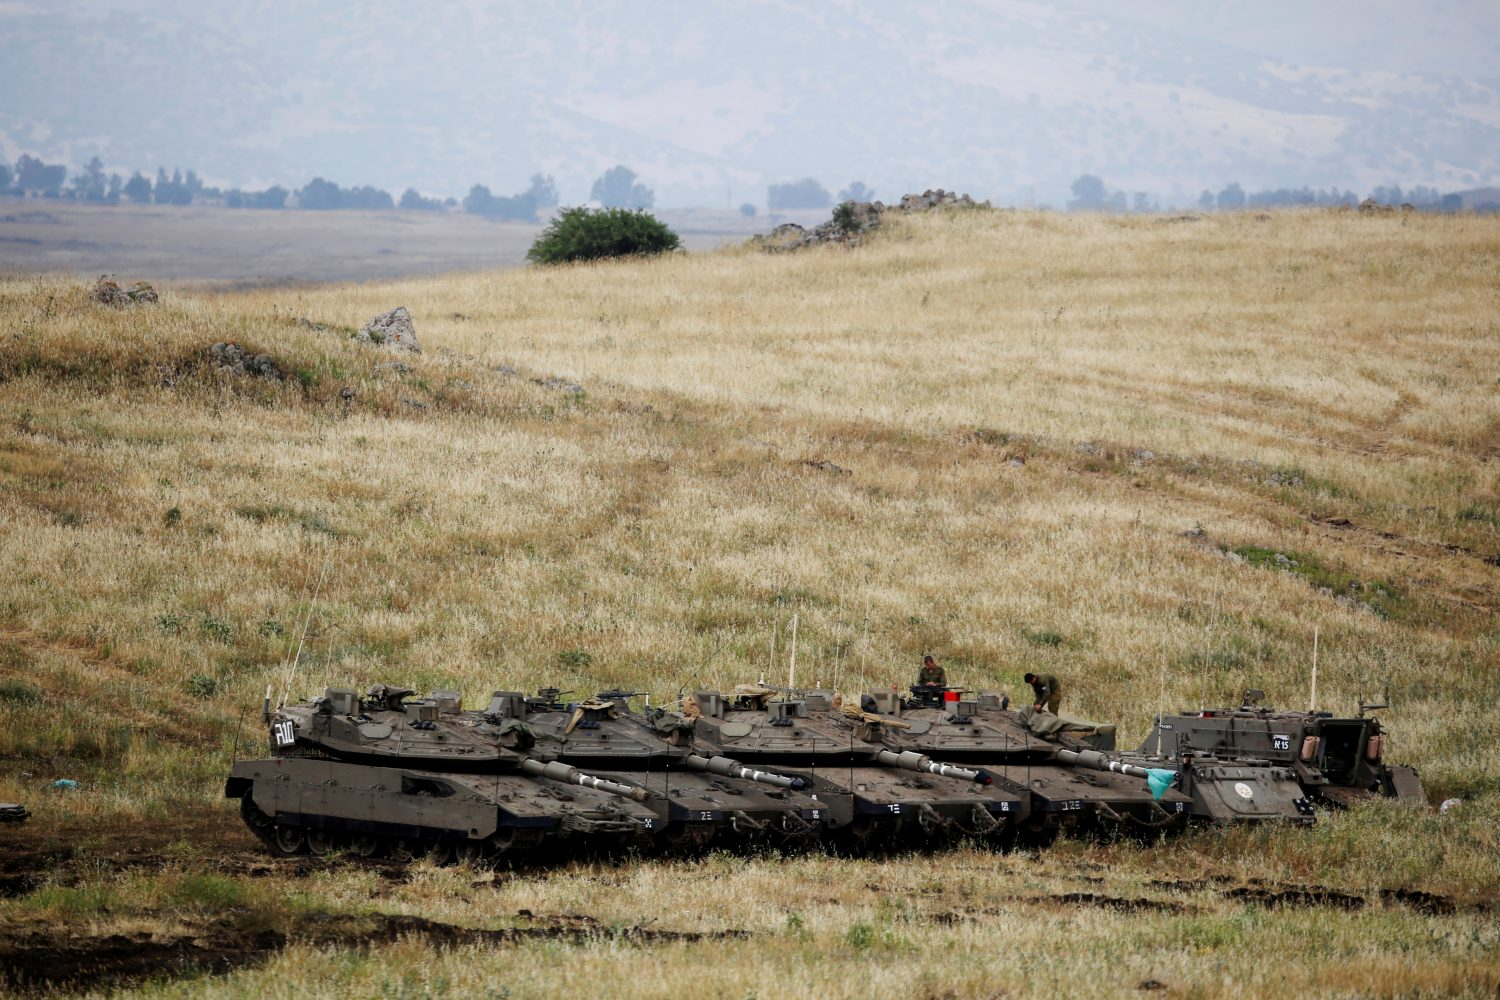 FILE PHOTO: Israeli soldiers stand on tanks near the Israeli side of the border with Syria in the Israeli-occupied Golan Heights, Israel May 9, 2018. REUTERS/Amir Cohen/File Photo